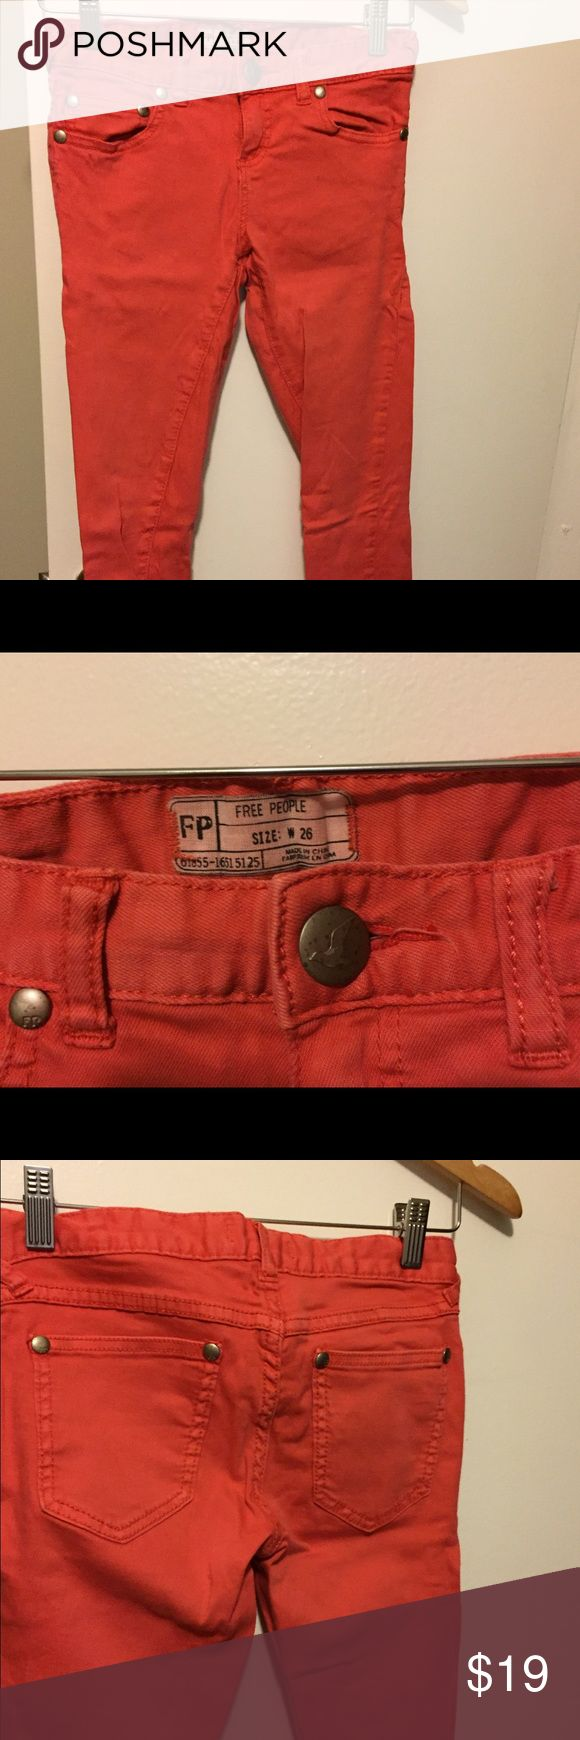 Free people coral jeans size 26 Worn once! Beautiful coral color Free People skinny jeans. Soft and comfortable! Free People Jeans Skinny